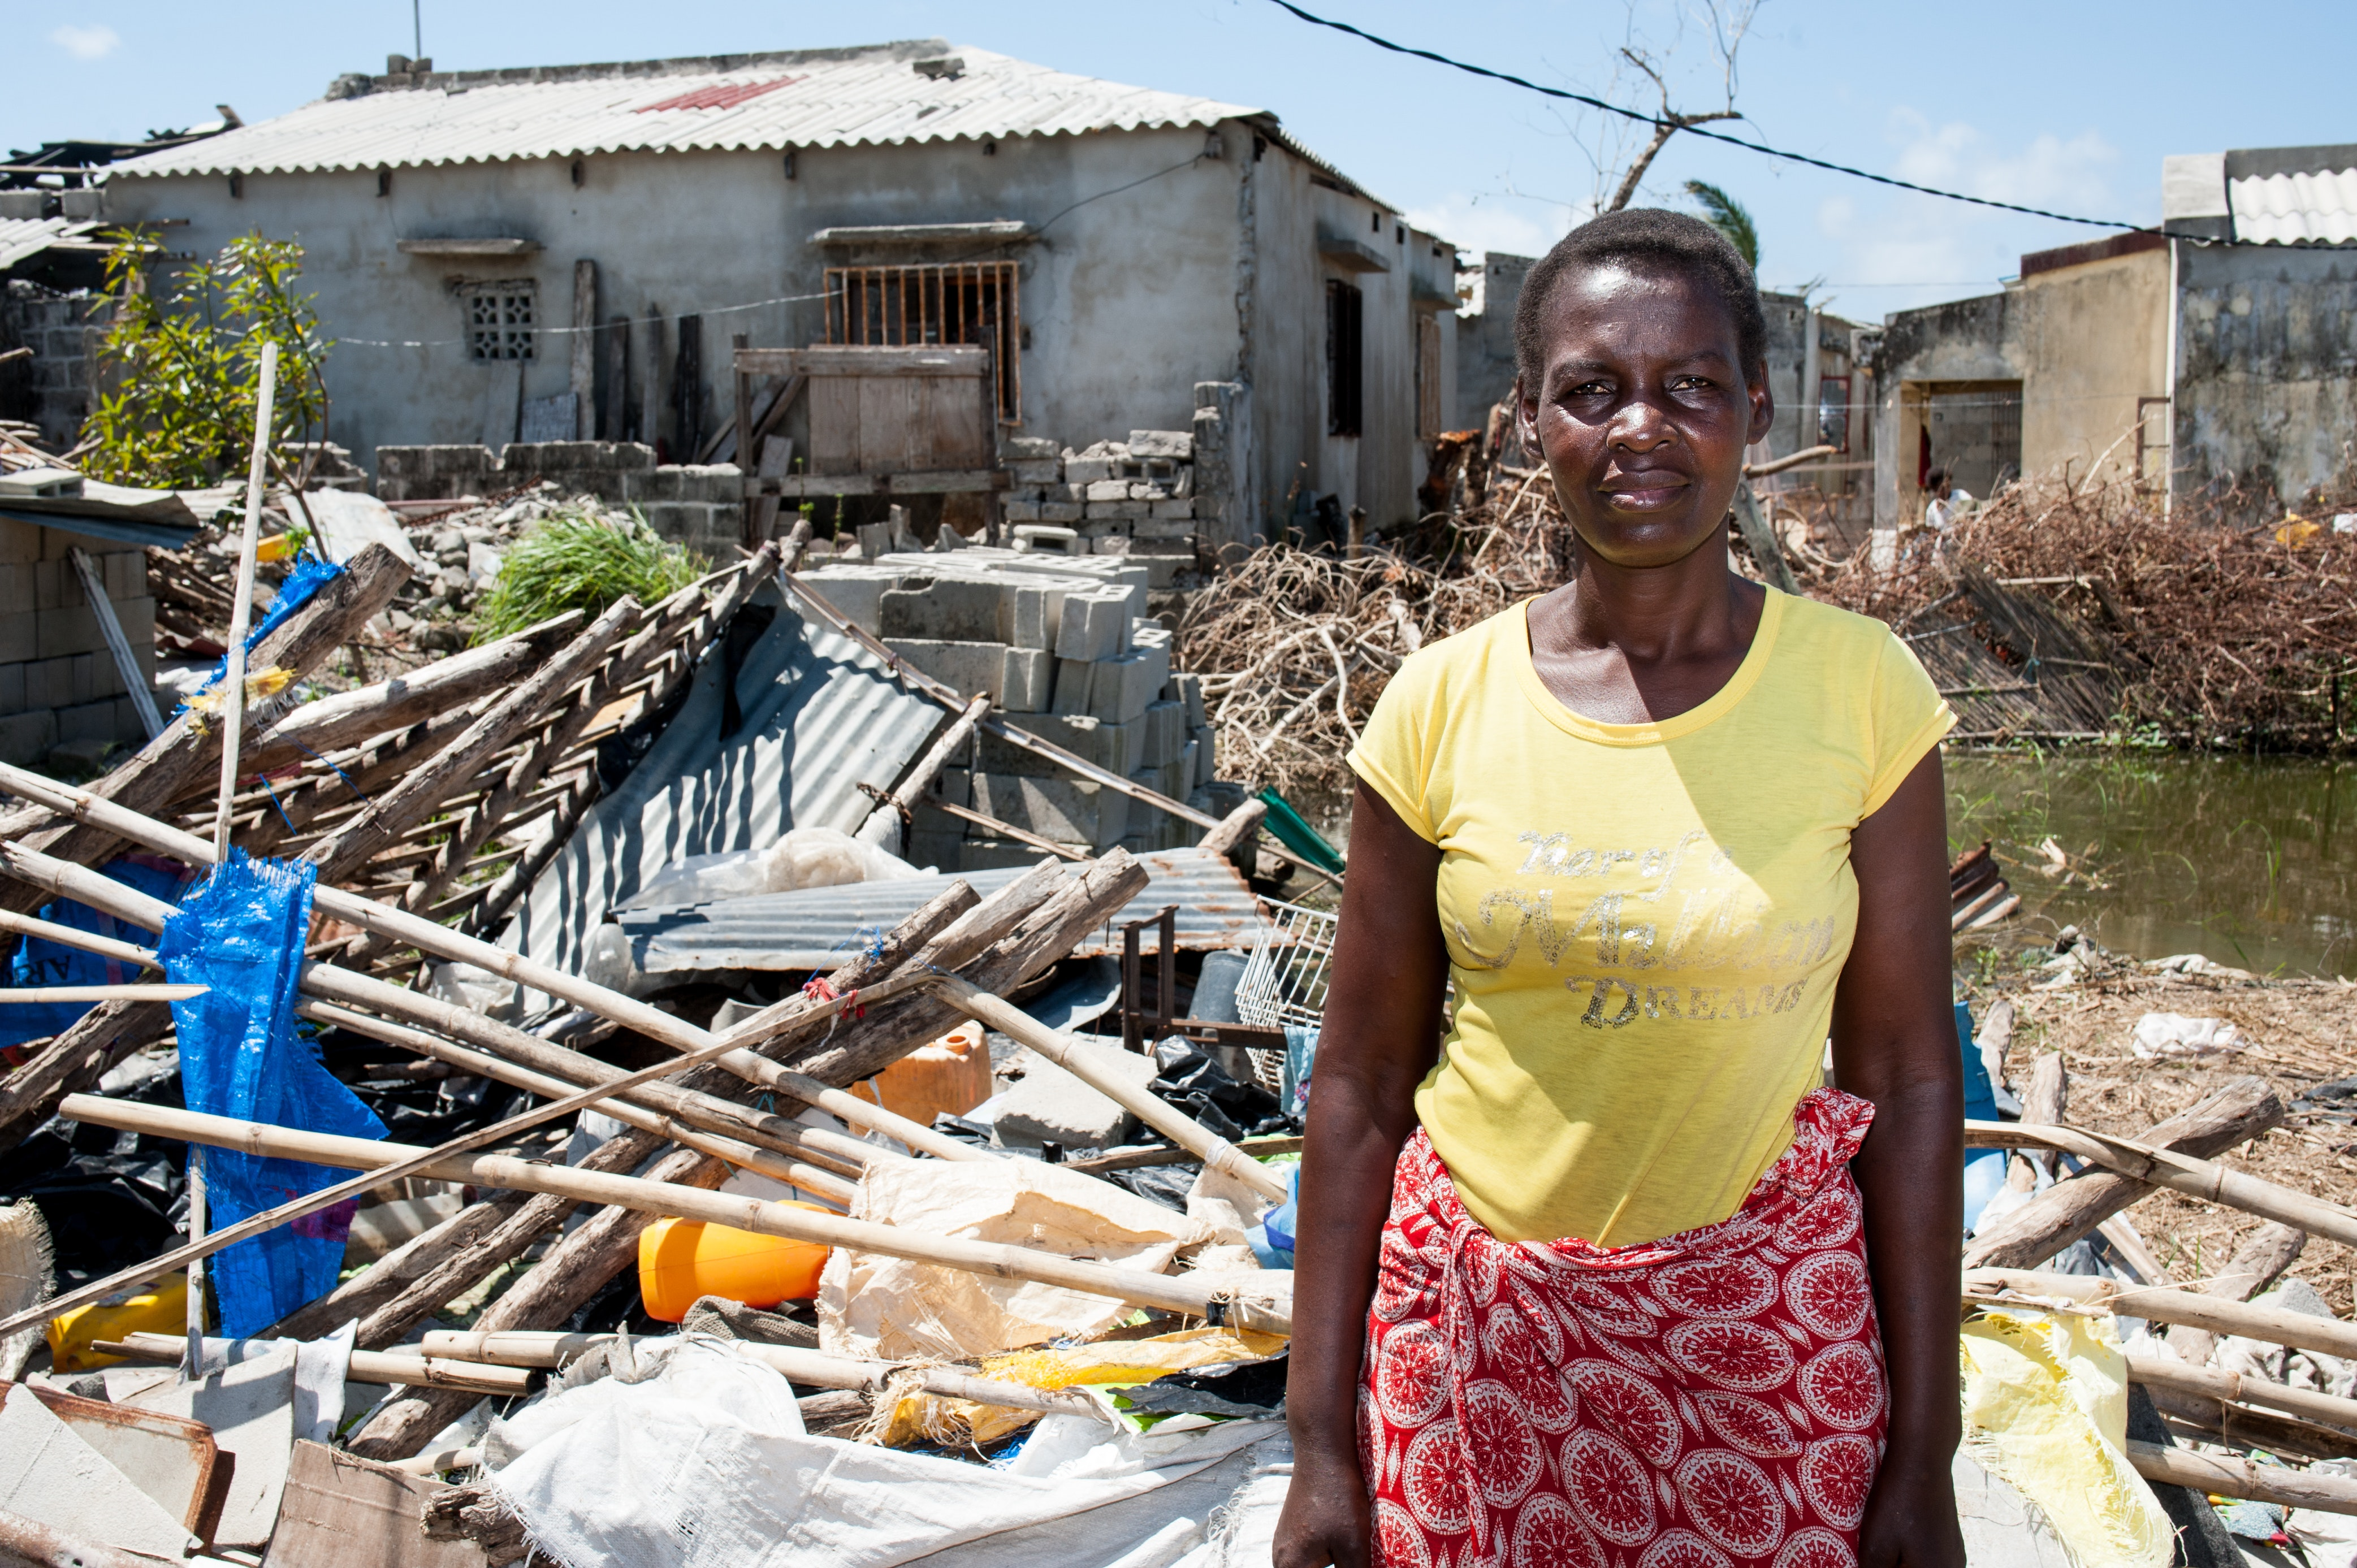 A Mozambican standing in front of her home, destroyed by Cyclone Idai. More than 1,000 people died in the storm. Photo credit: Christian Jepsen/flickr, CC BY-NC-ND